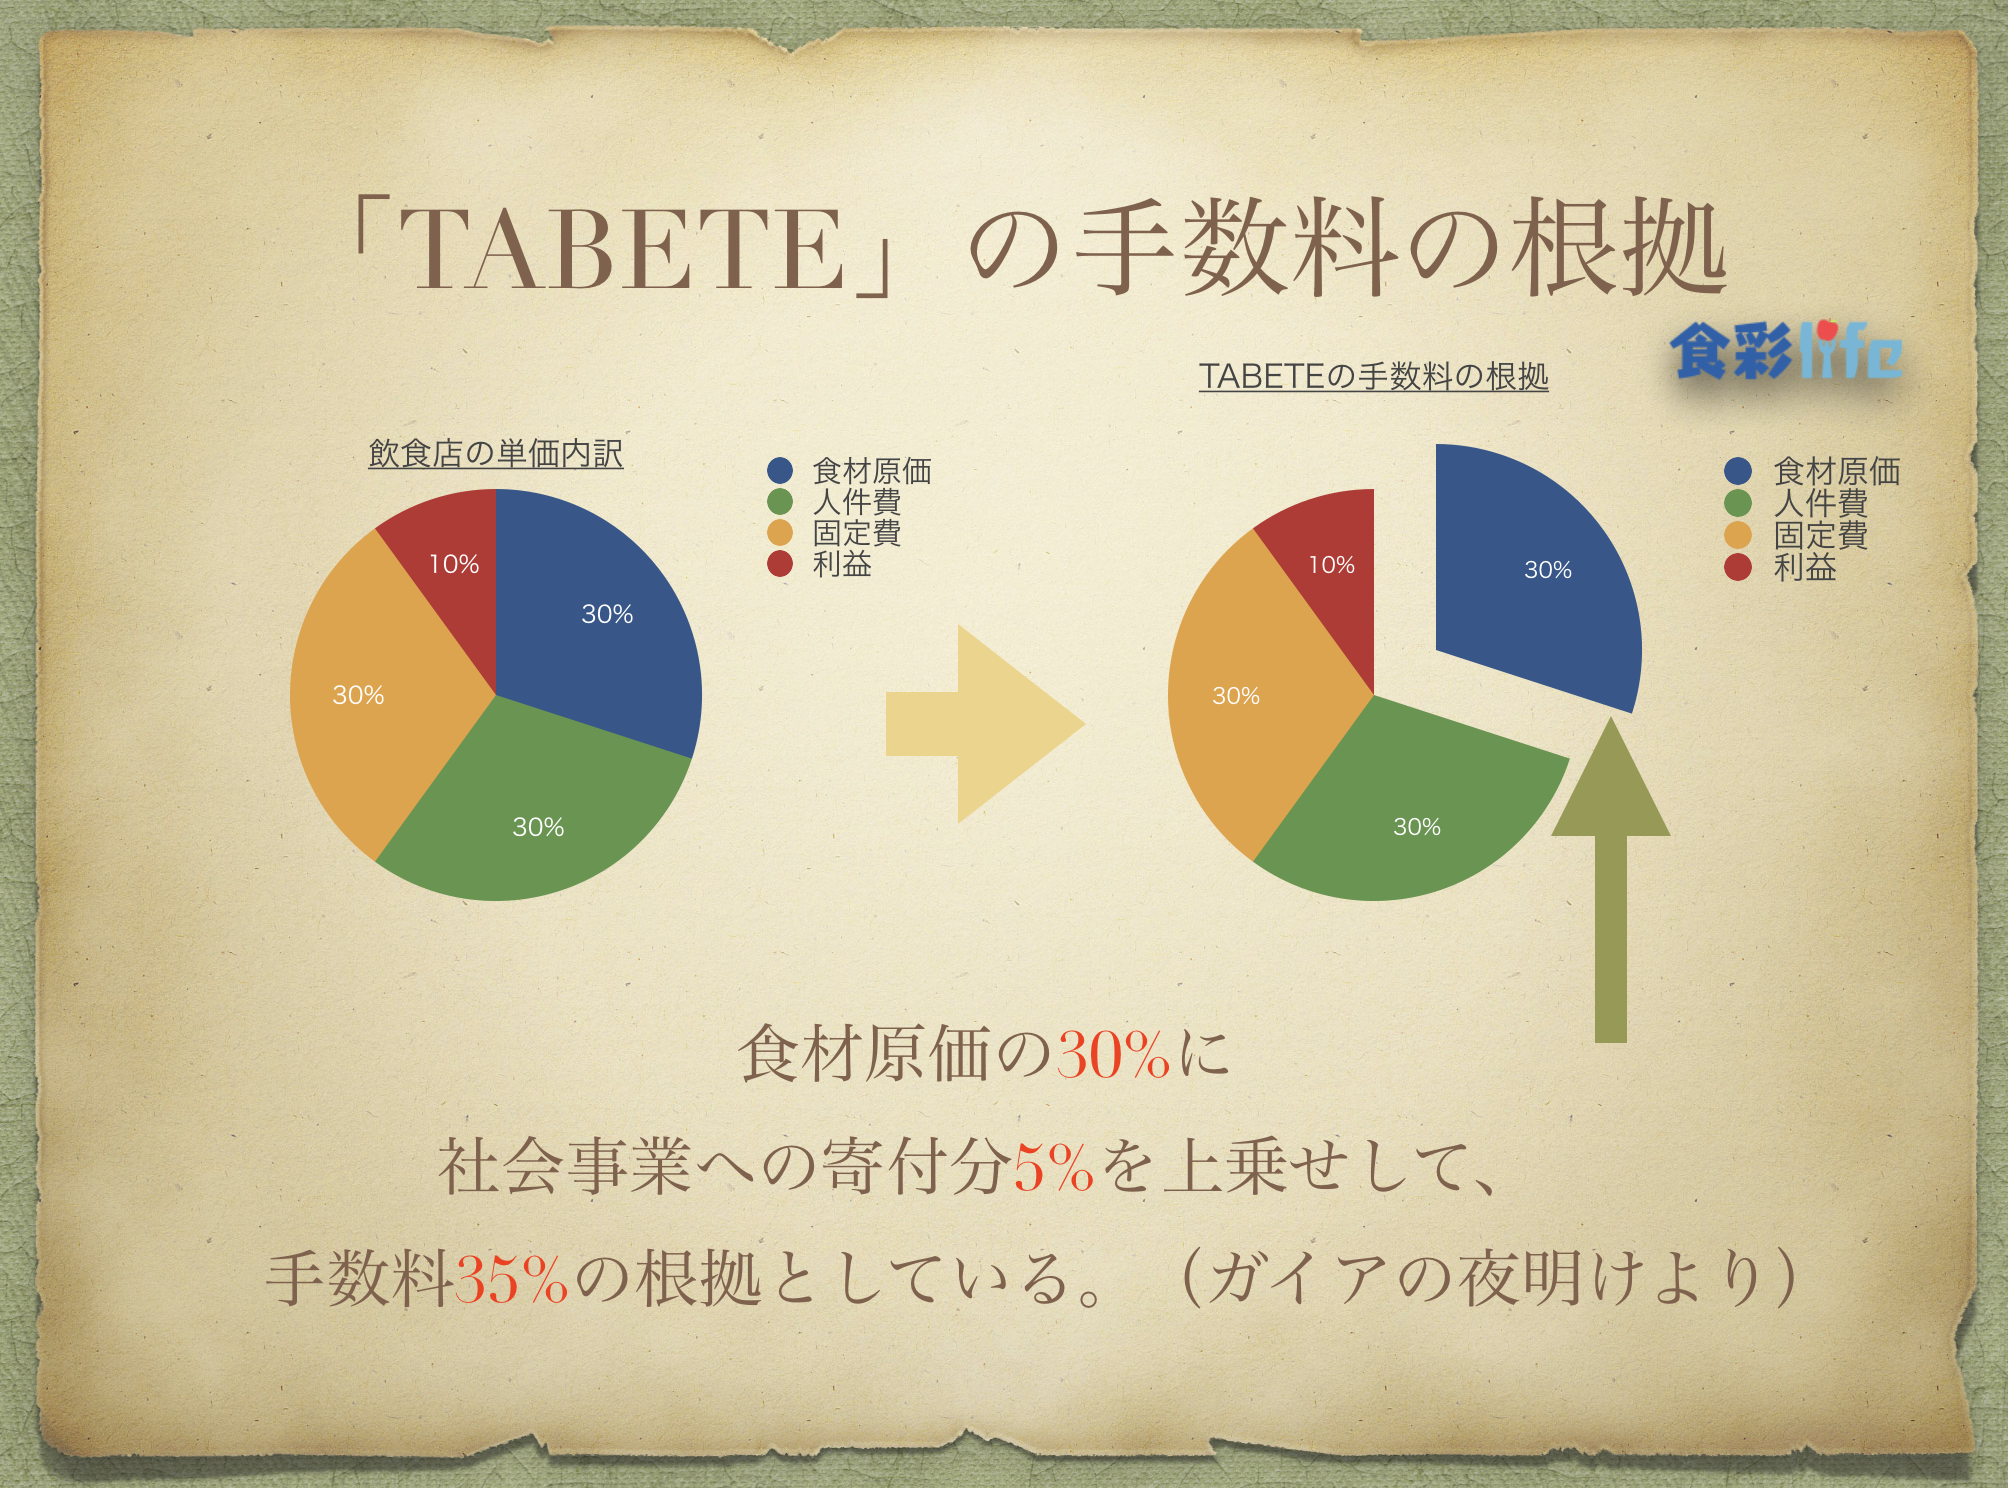 TABETE 手数料の根拠